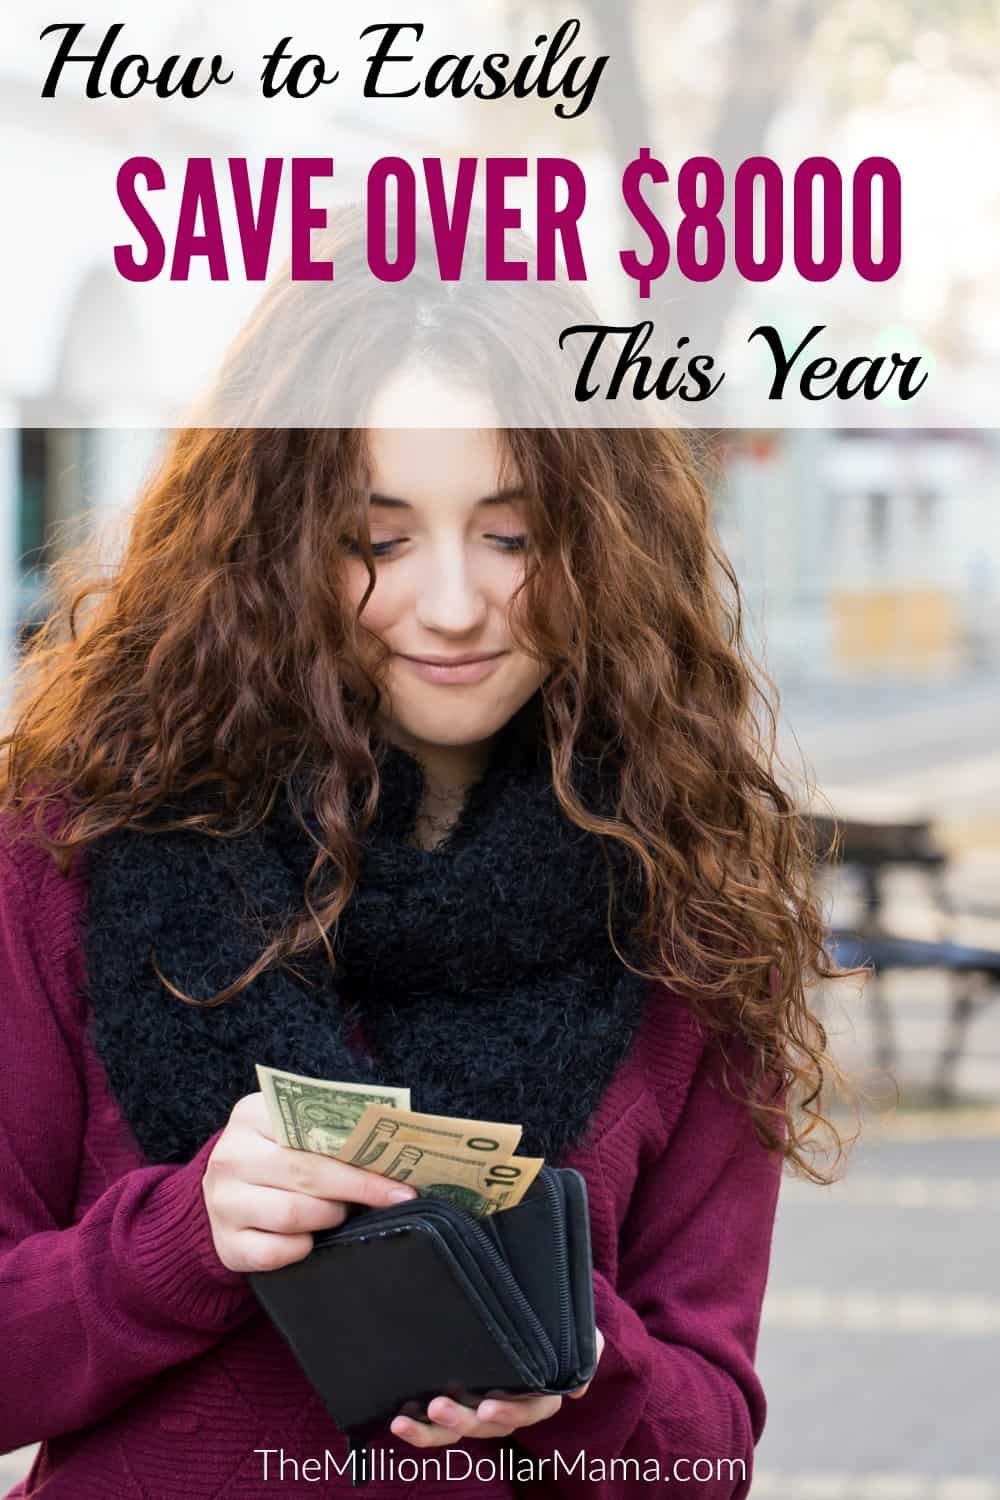 How to easily save money this year. These easy money-saving tips and ideas will help you save thousands of dollars!